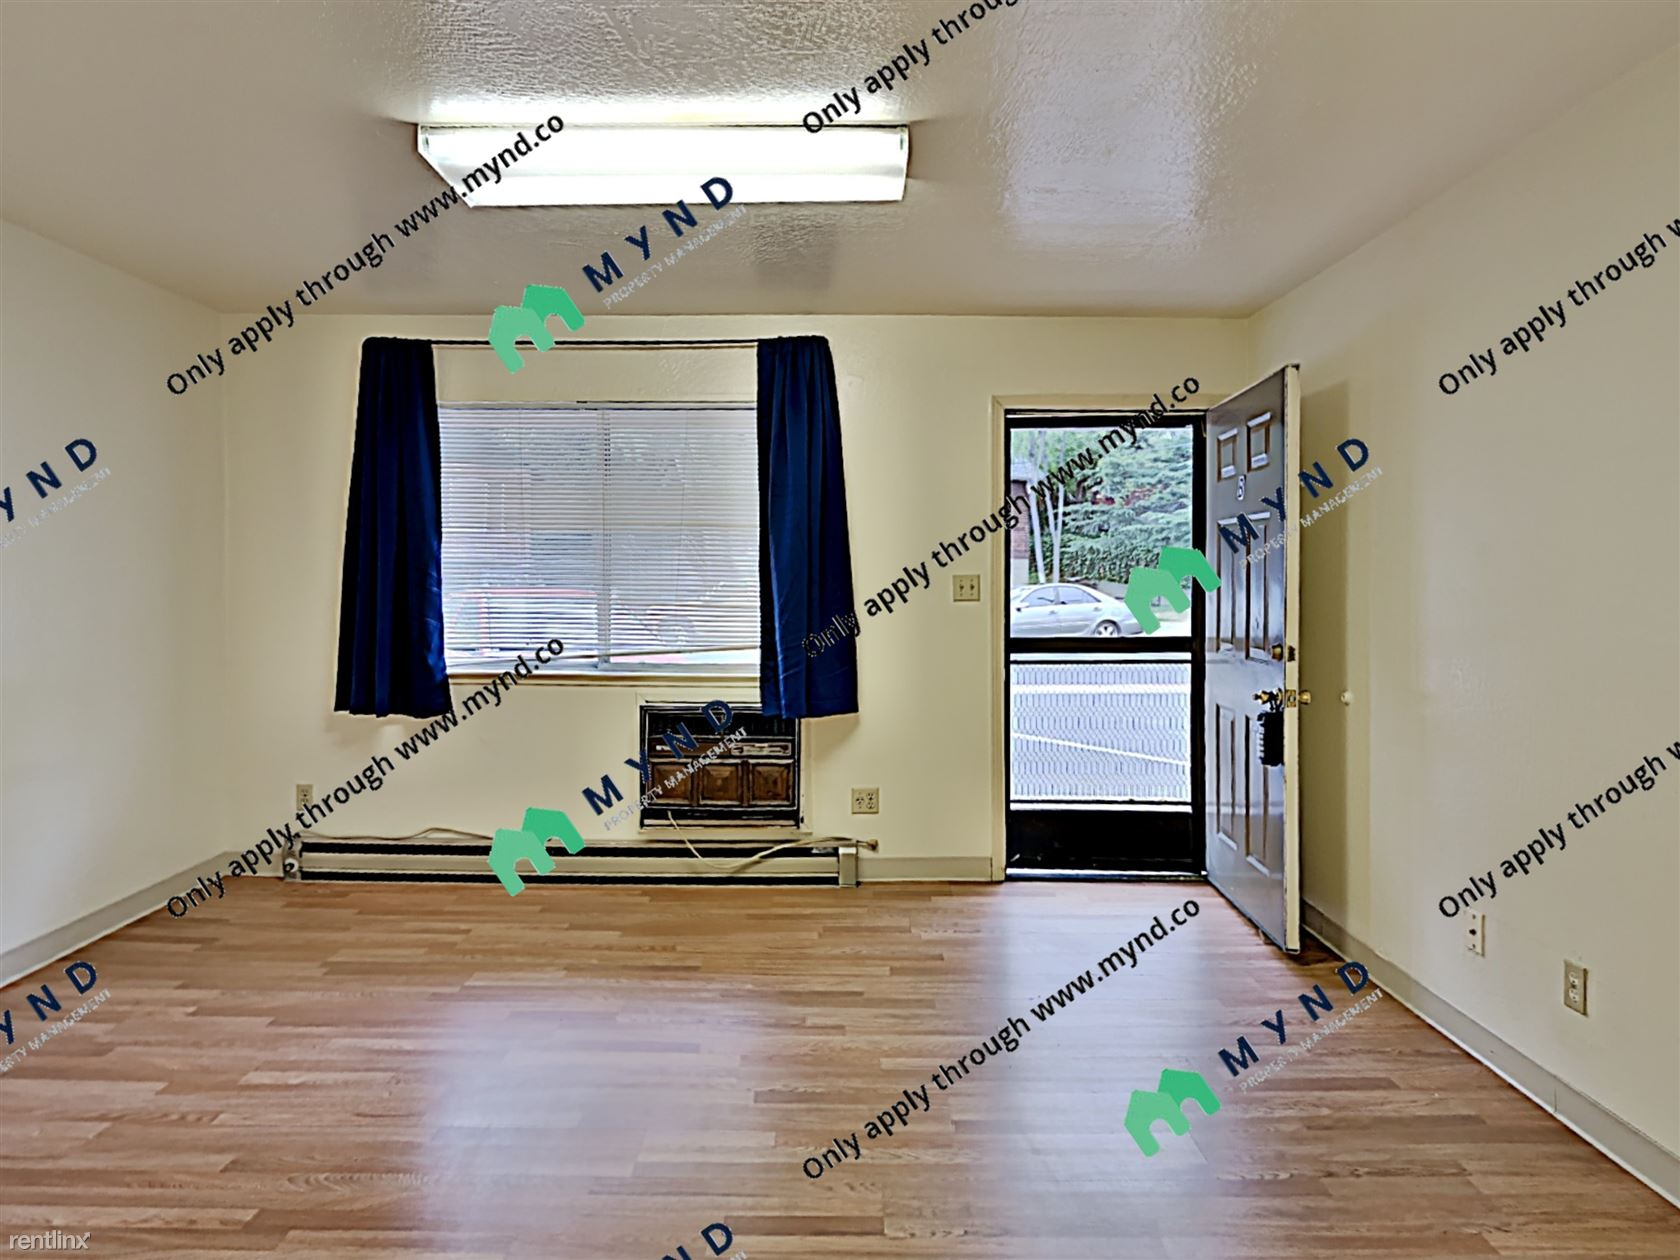 140 College Dr Apt B, Reno, NV - $795 USD/ month